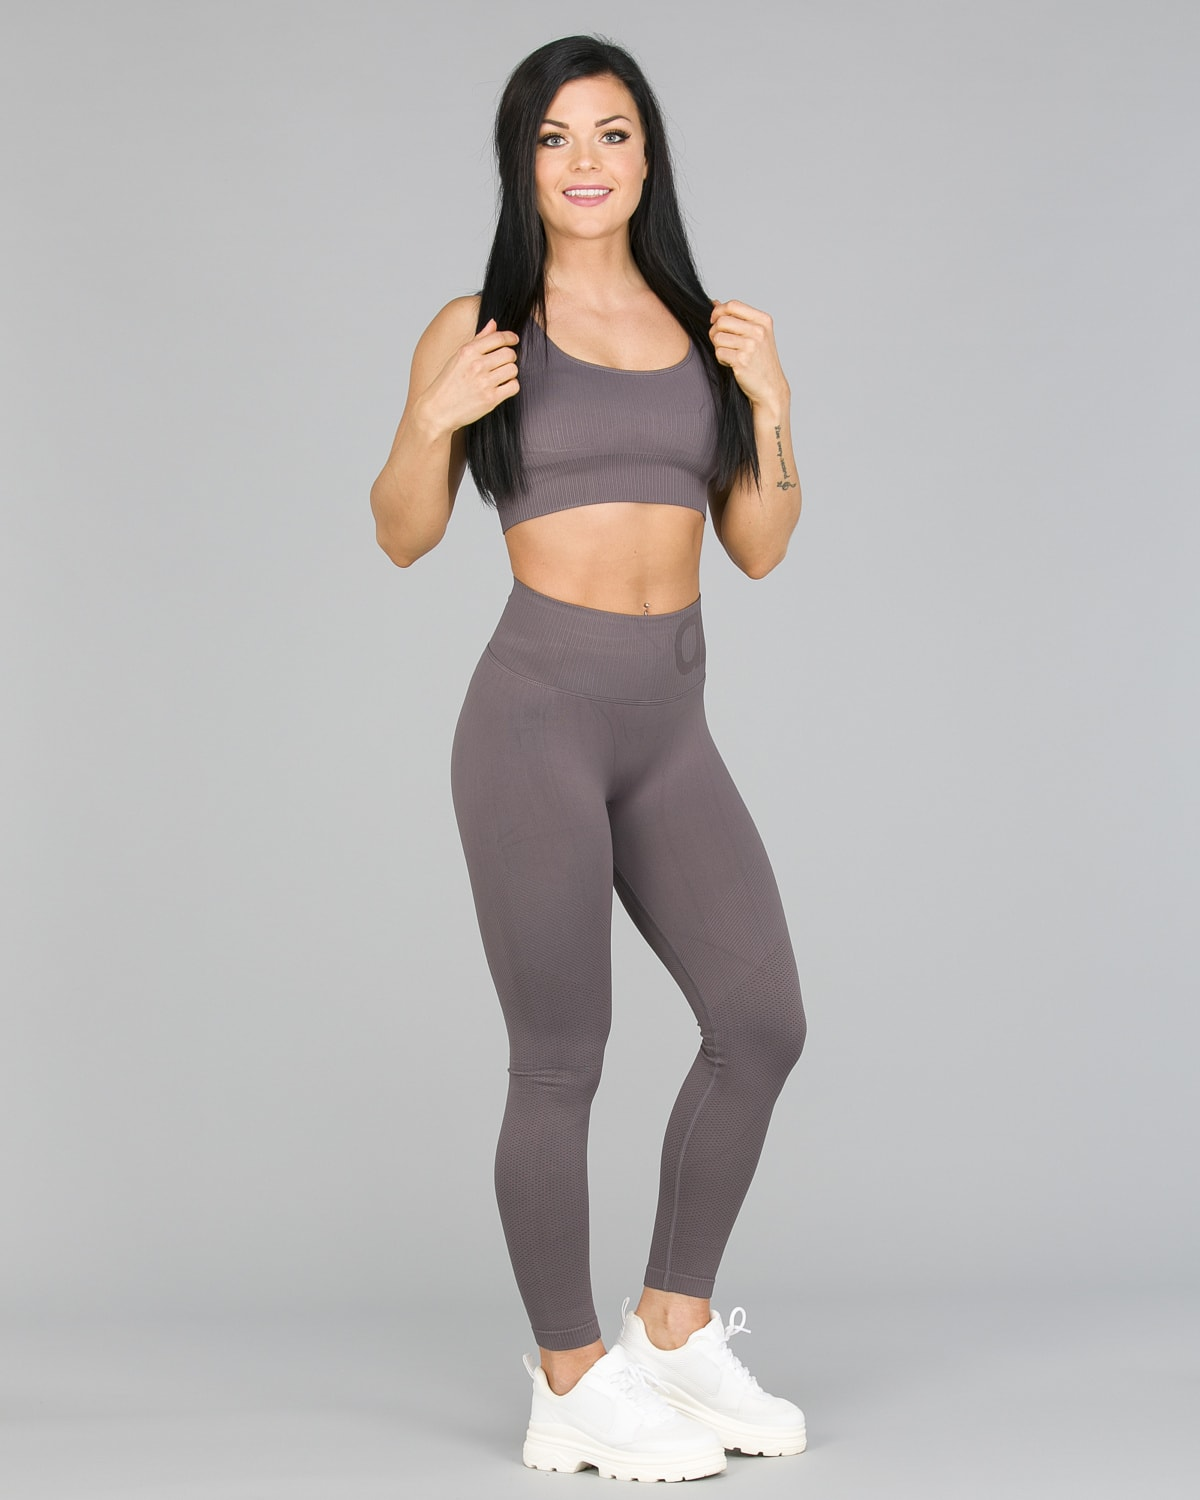 Aim'n Concrete Attention Seamless Tights5